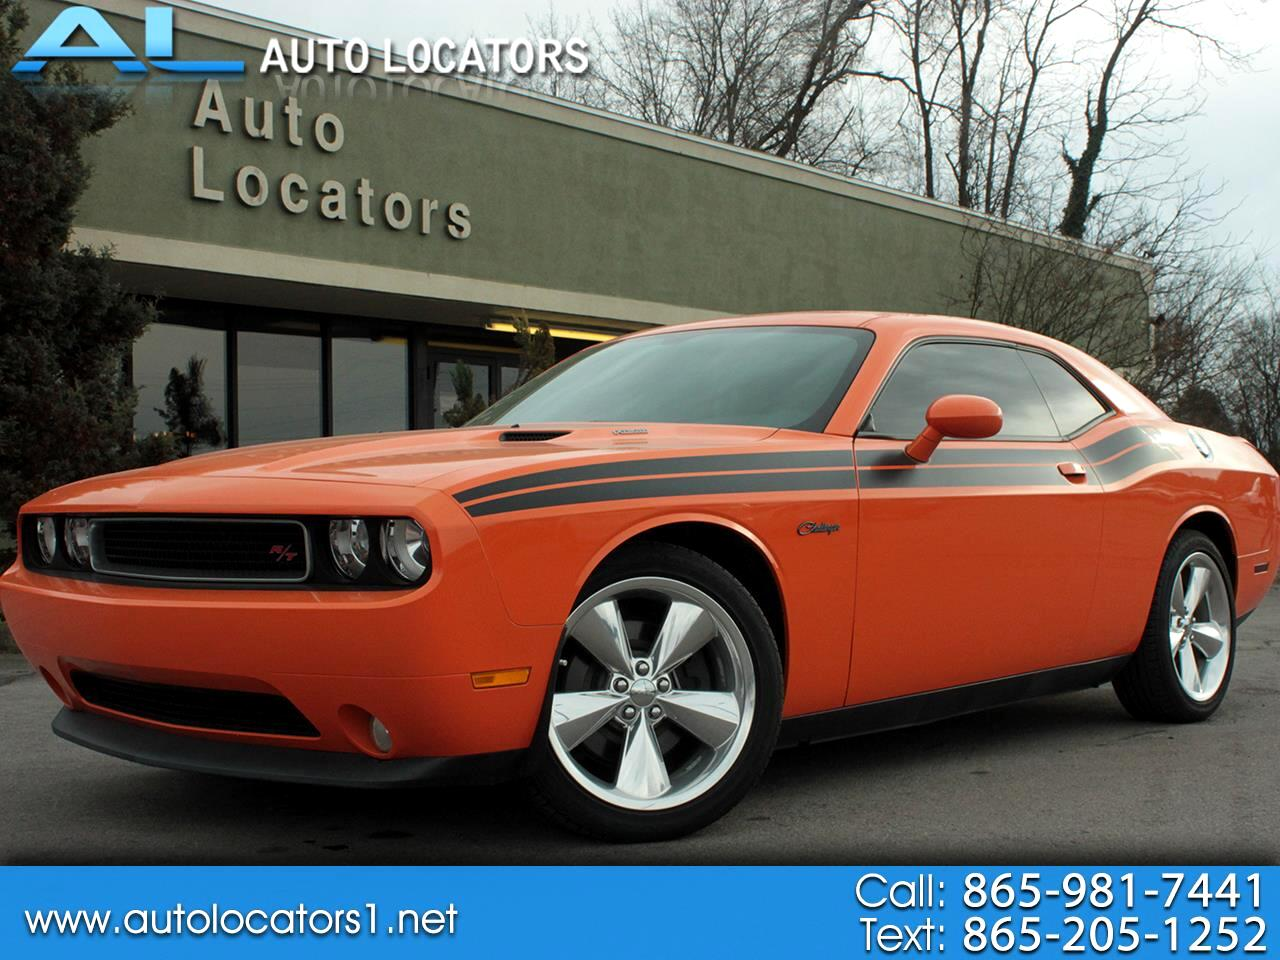 Dodge Challenger 2dr Cpe R/T Classic 2014